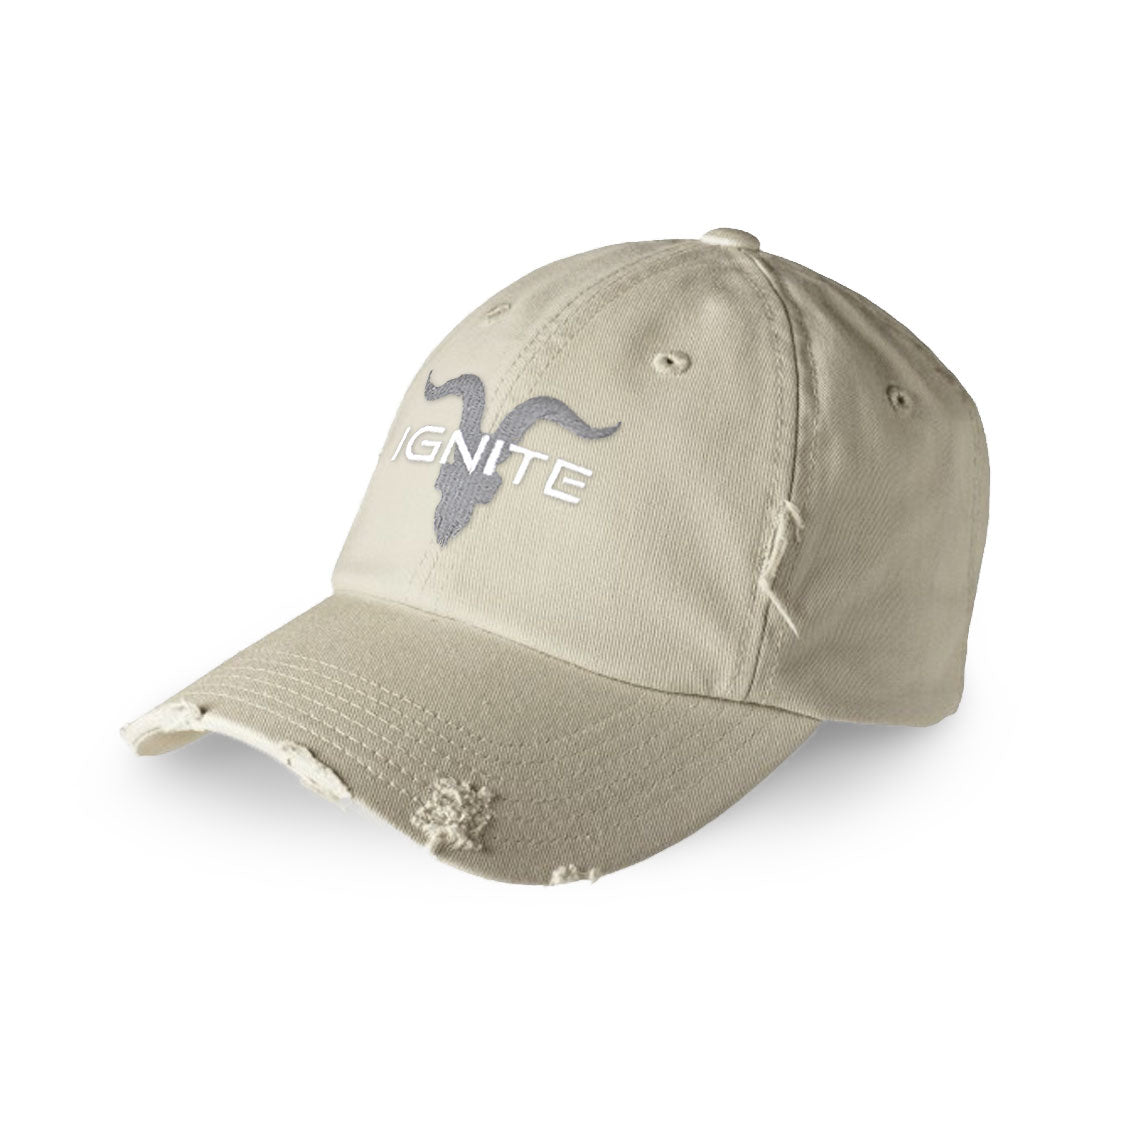 Ignite Premium Collection Distressed Dad Hat - Khaki